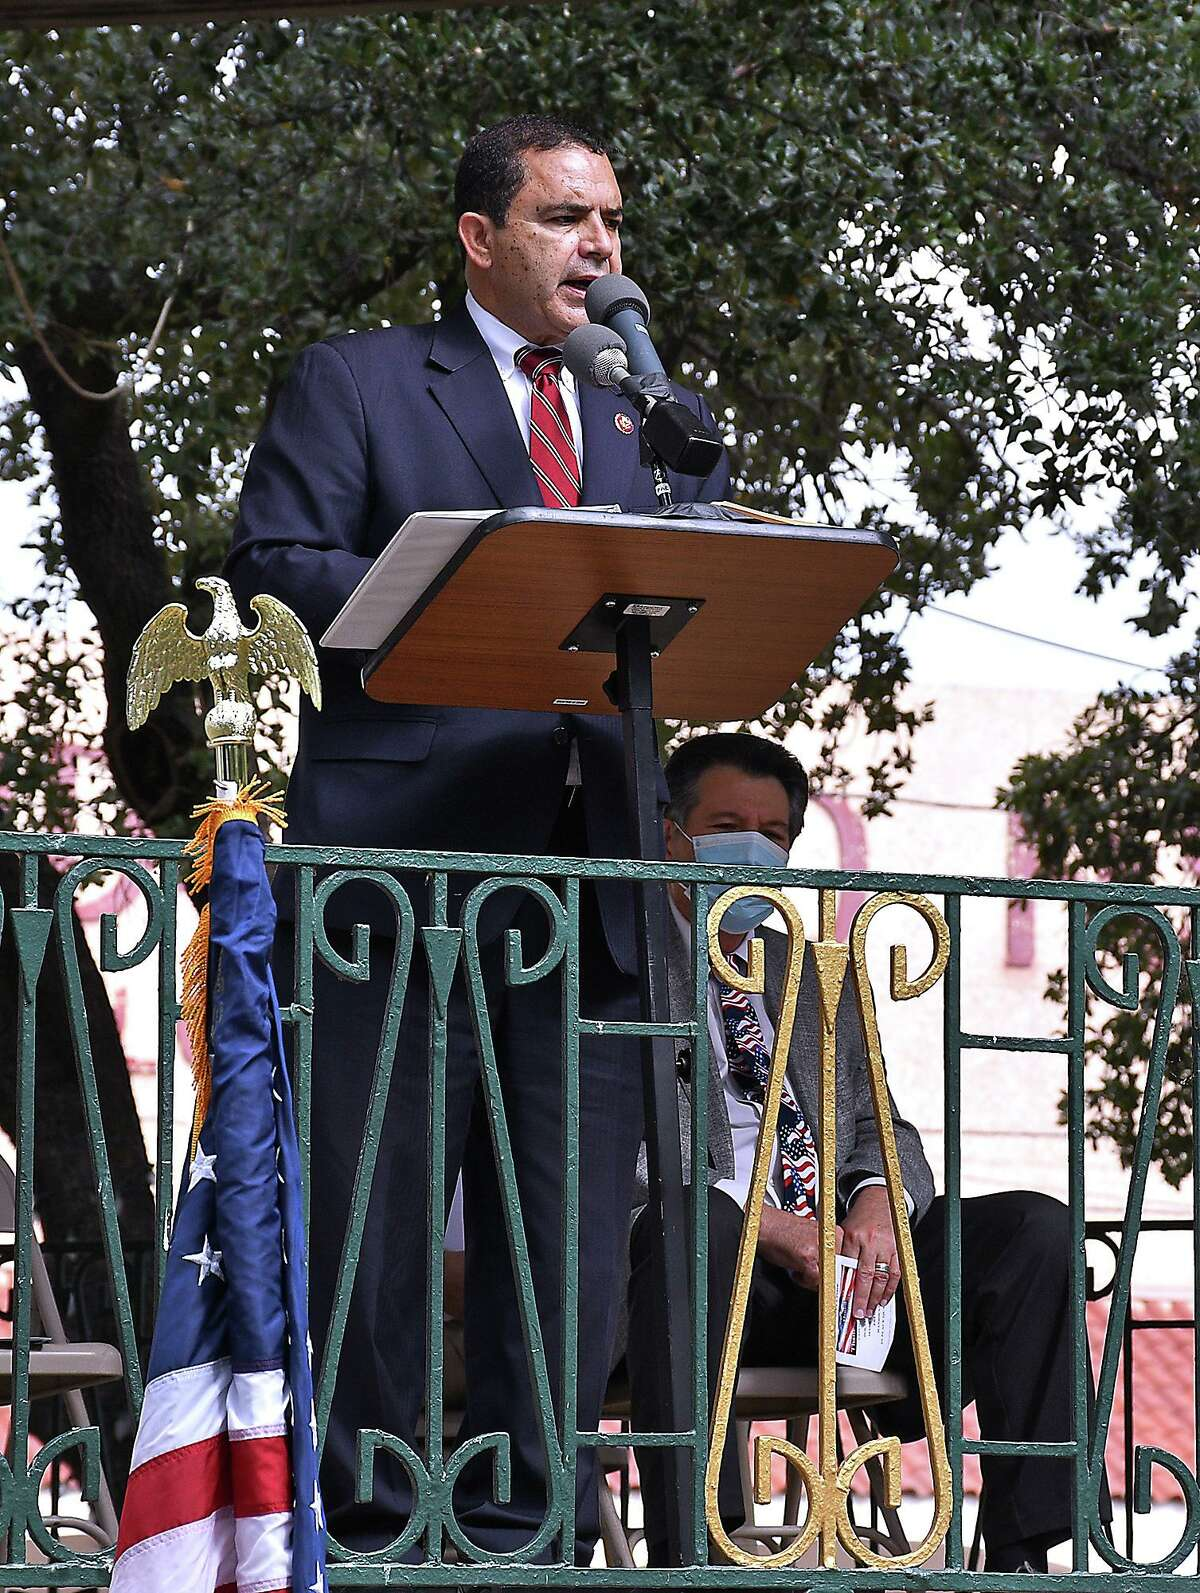 VFW Post 9194 hosted the Annual Veterans Day celebration, Wednesday, November 11, 2020, at San Agustin Plaza. Military veterans, family members members of the community and local officials participated in the event.